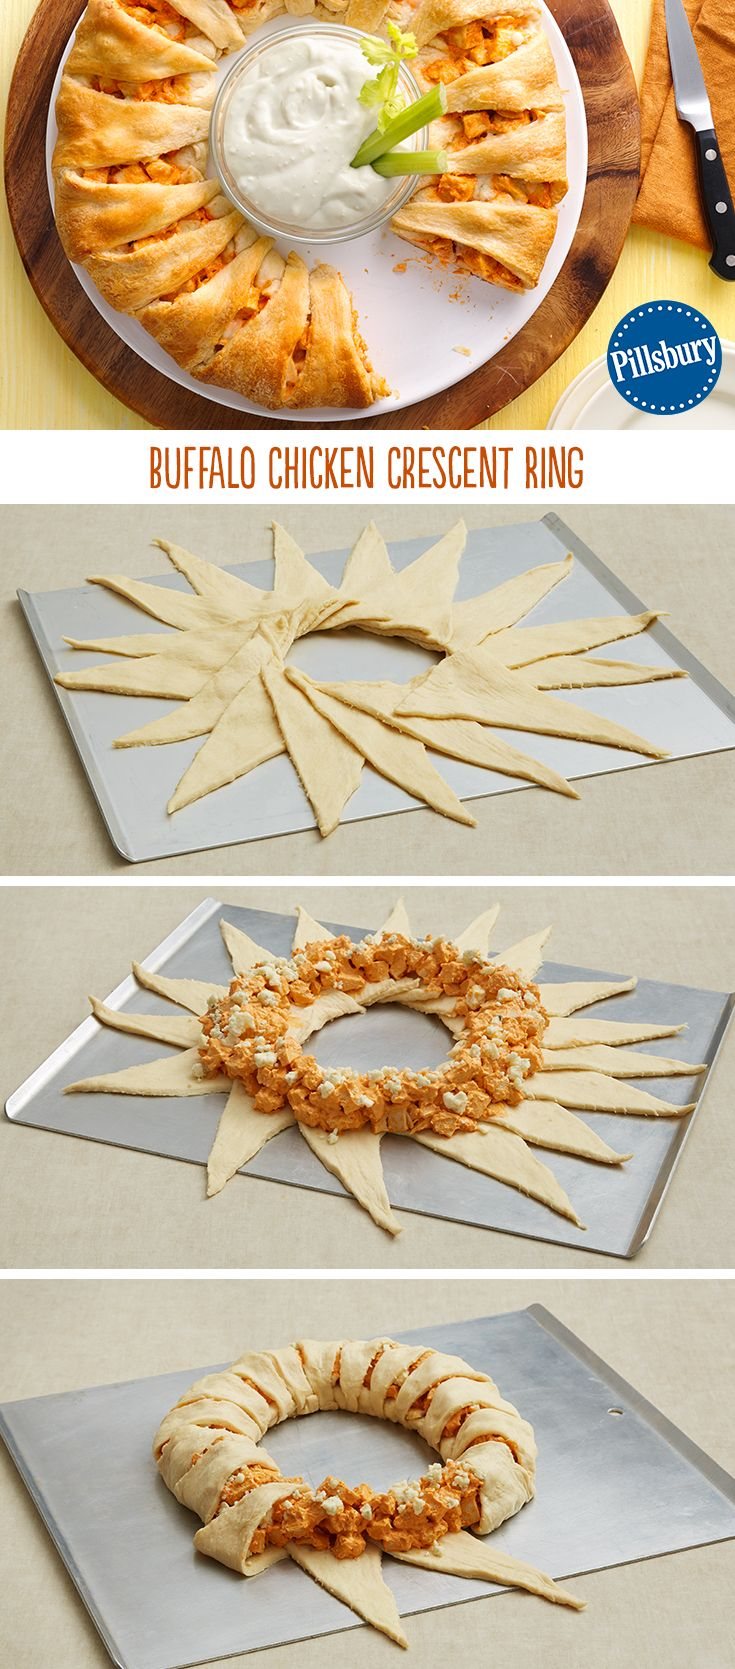 Serve up a crowd-pleaser with this Buffalo Chicken Crescent Ring! Incredibly easy to make with a harmony of spicy and cooling ingredients. Perfect for a weeknight dinner or easy appetizer.